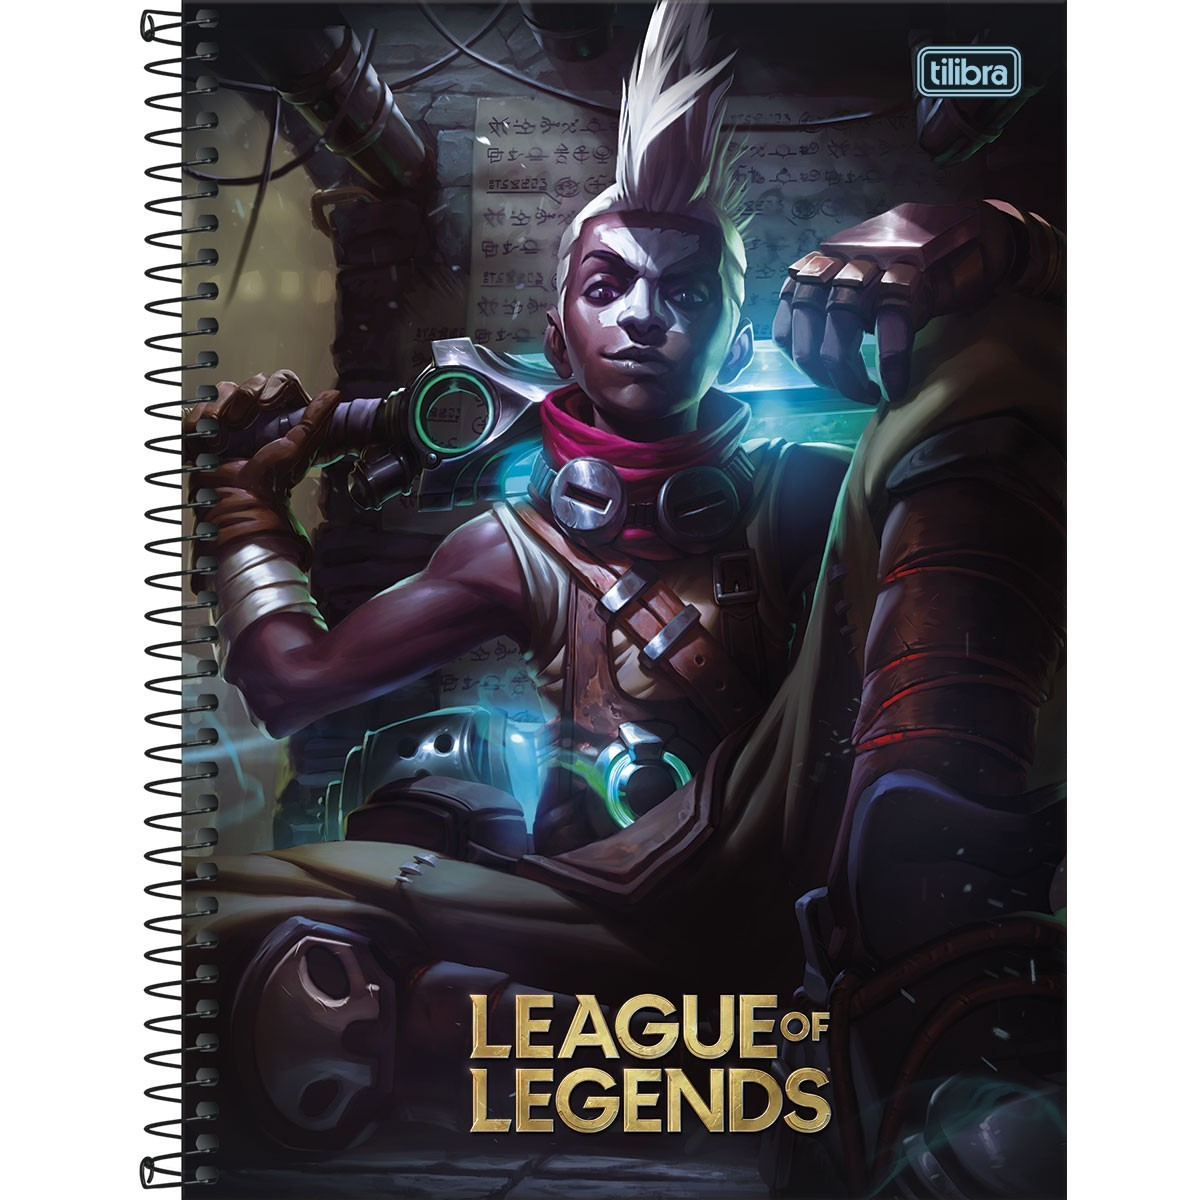 Caderno Espiral Capa Dura Universitário 1 Matéria League of Legends Ekko 80 Folhas